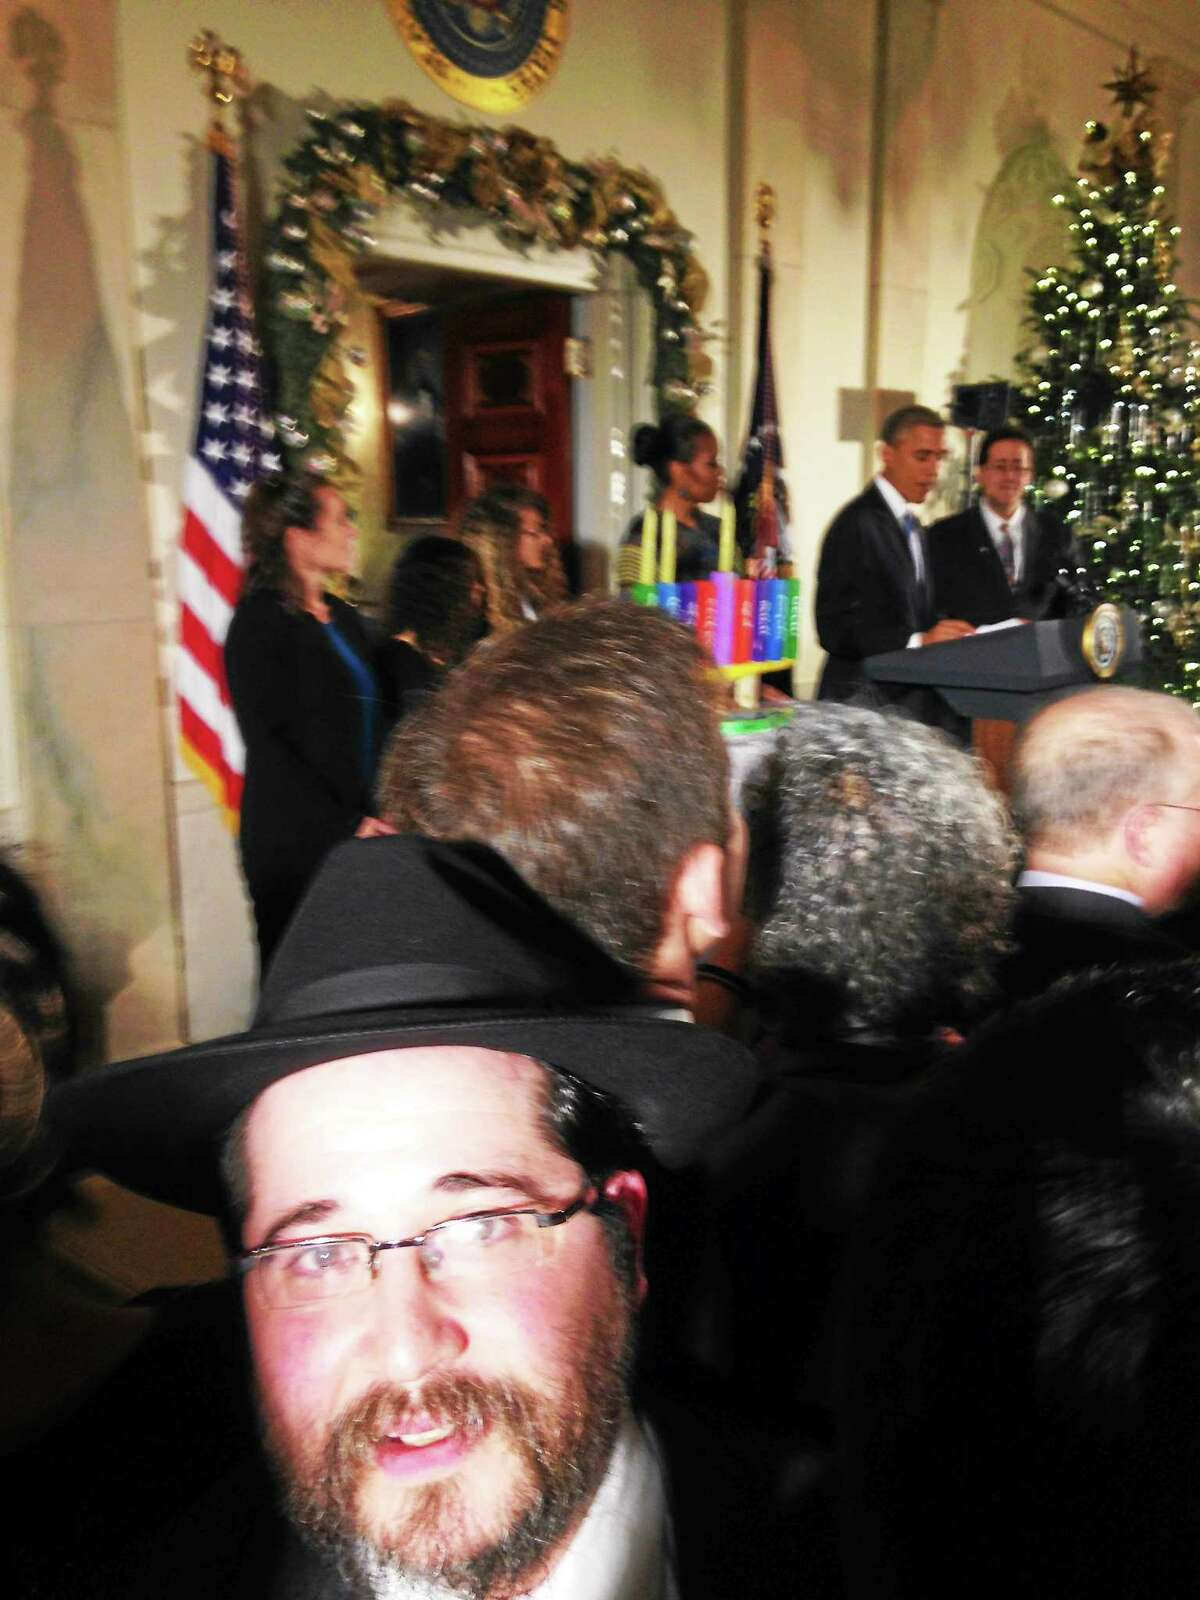 Rabbi Shua Rosenstein of Chabad at Yale visits the White House for a Hanukkah celebration hosted by President Barack Obama and first lady Michelle Obama.